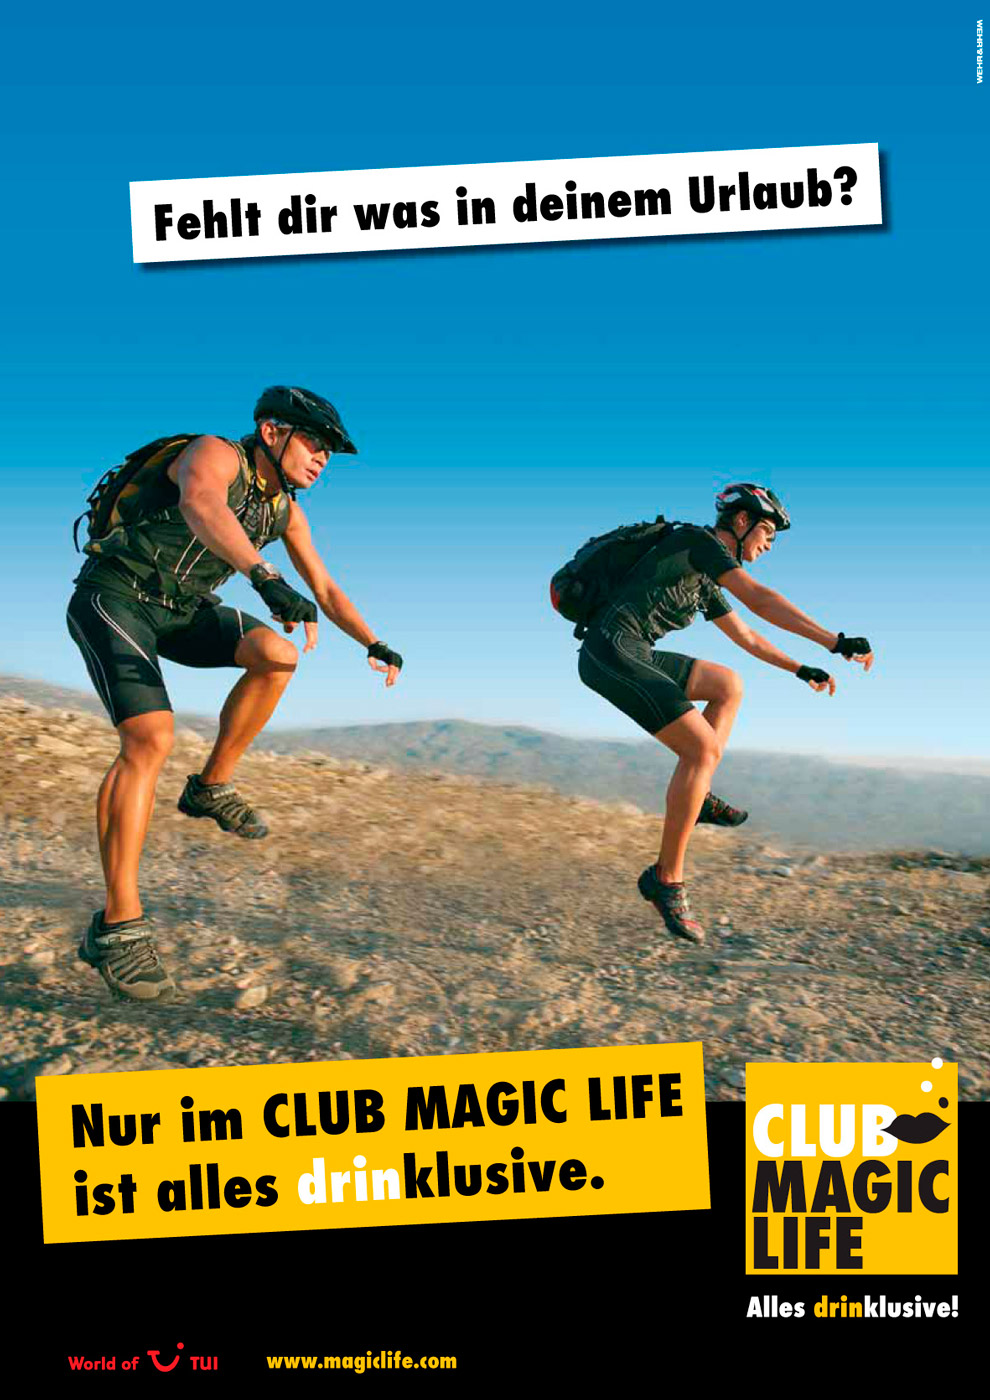 magiclife-kampagne-5